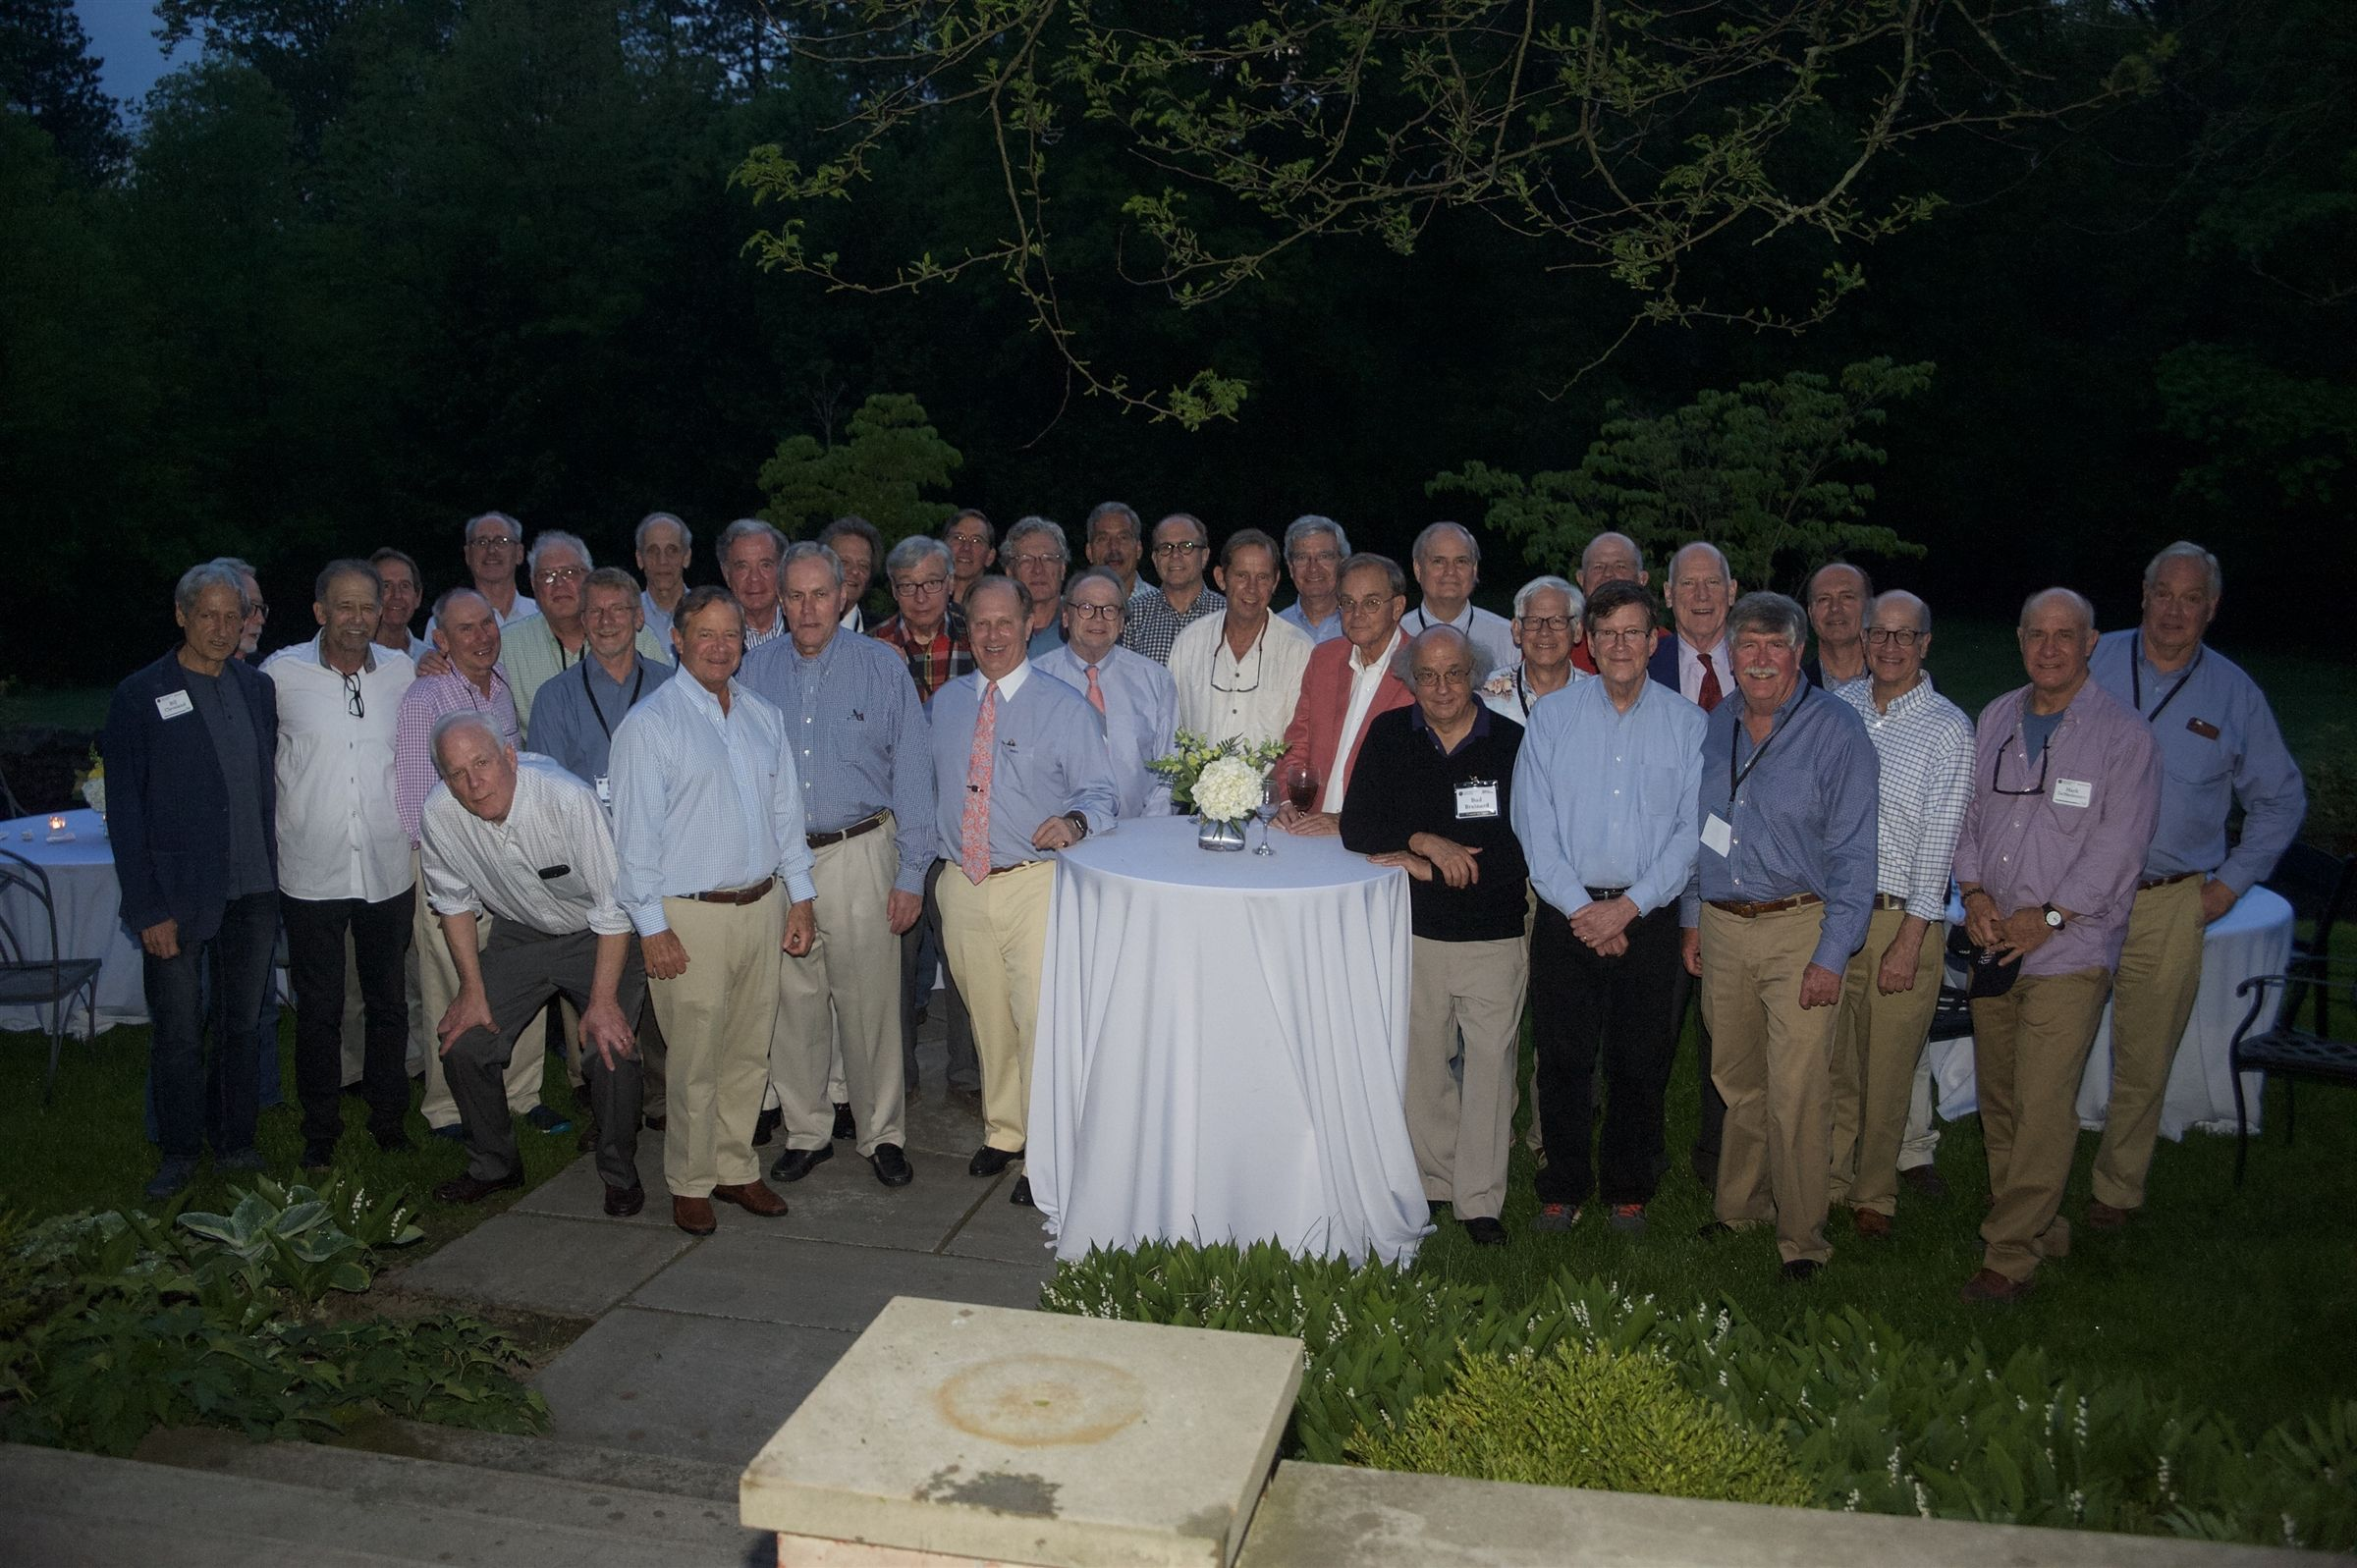 The Class of 1969 turned up in record numbers for their 50th Reunion!  This all-star class had a blast all weekend, especially at Merry and Rob McCreary's house party.